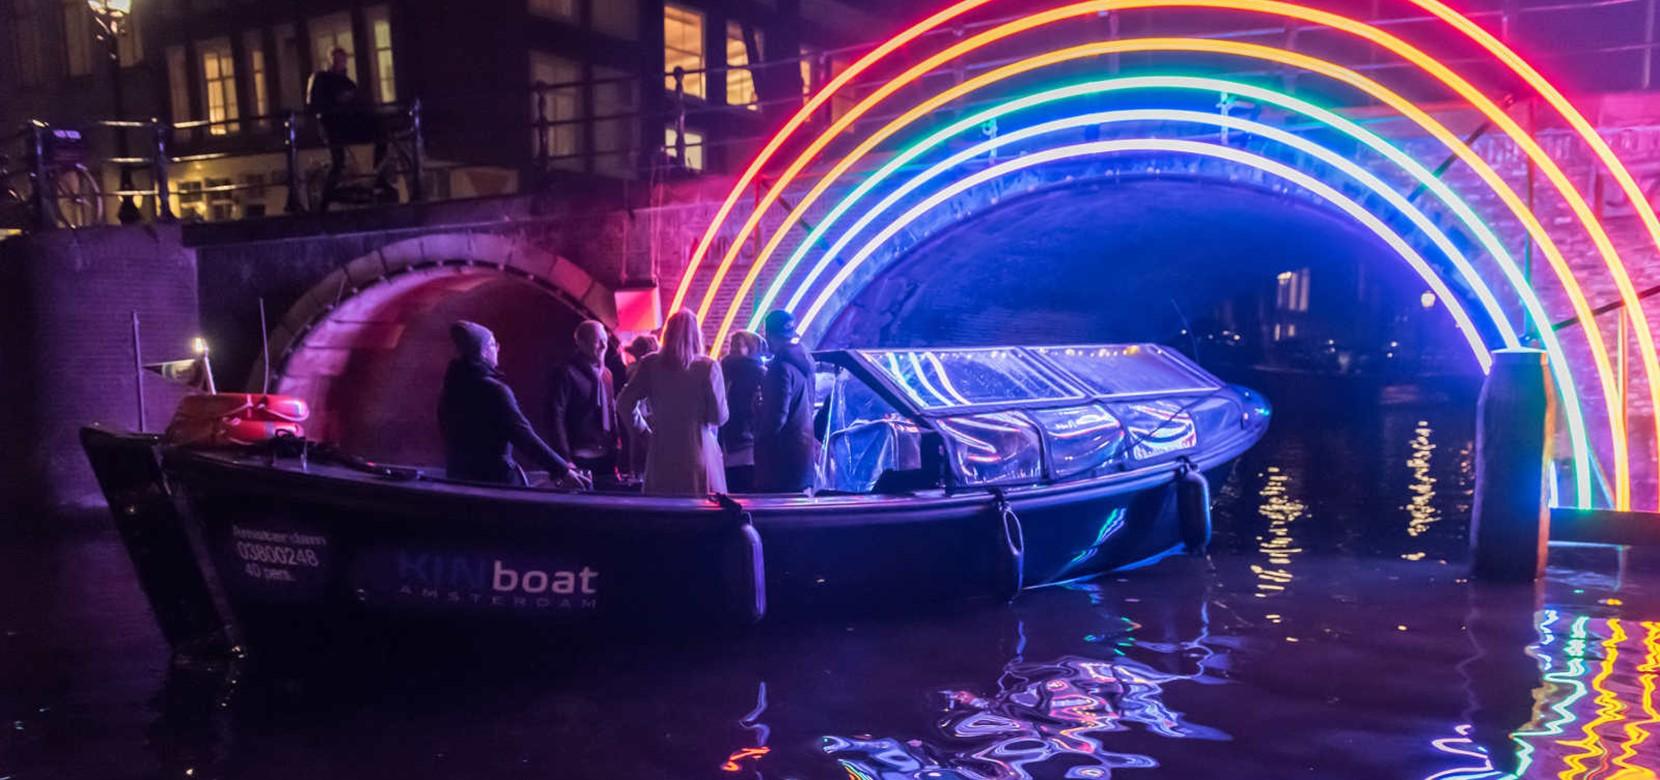 Amsterdam Light Festival Cruise – Small Boat